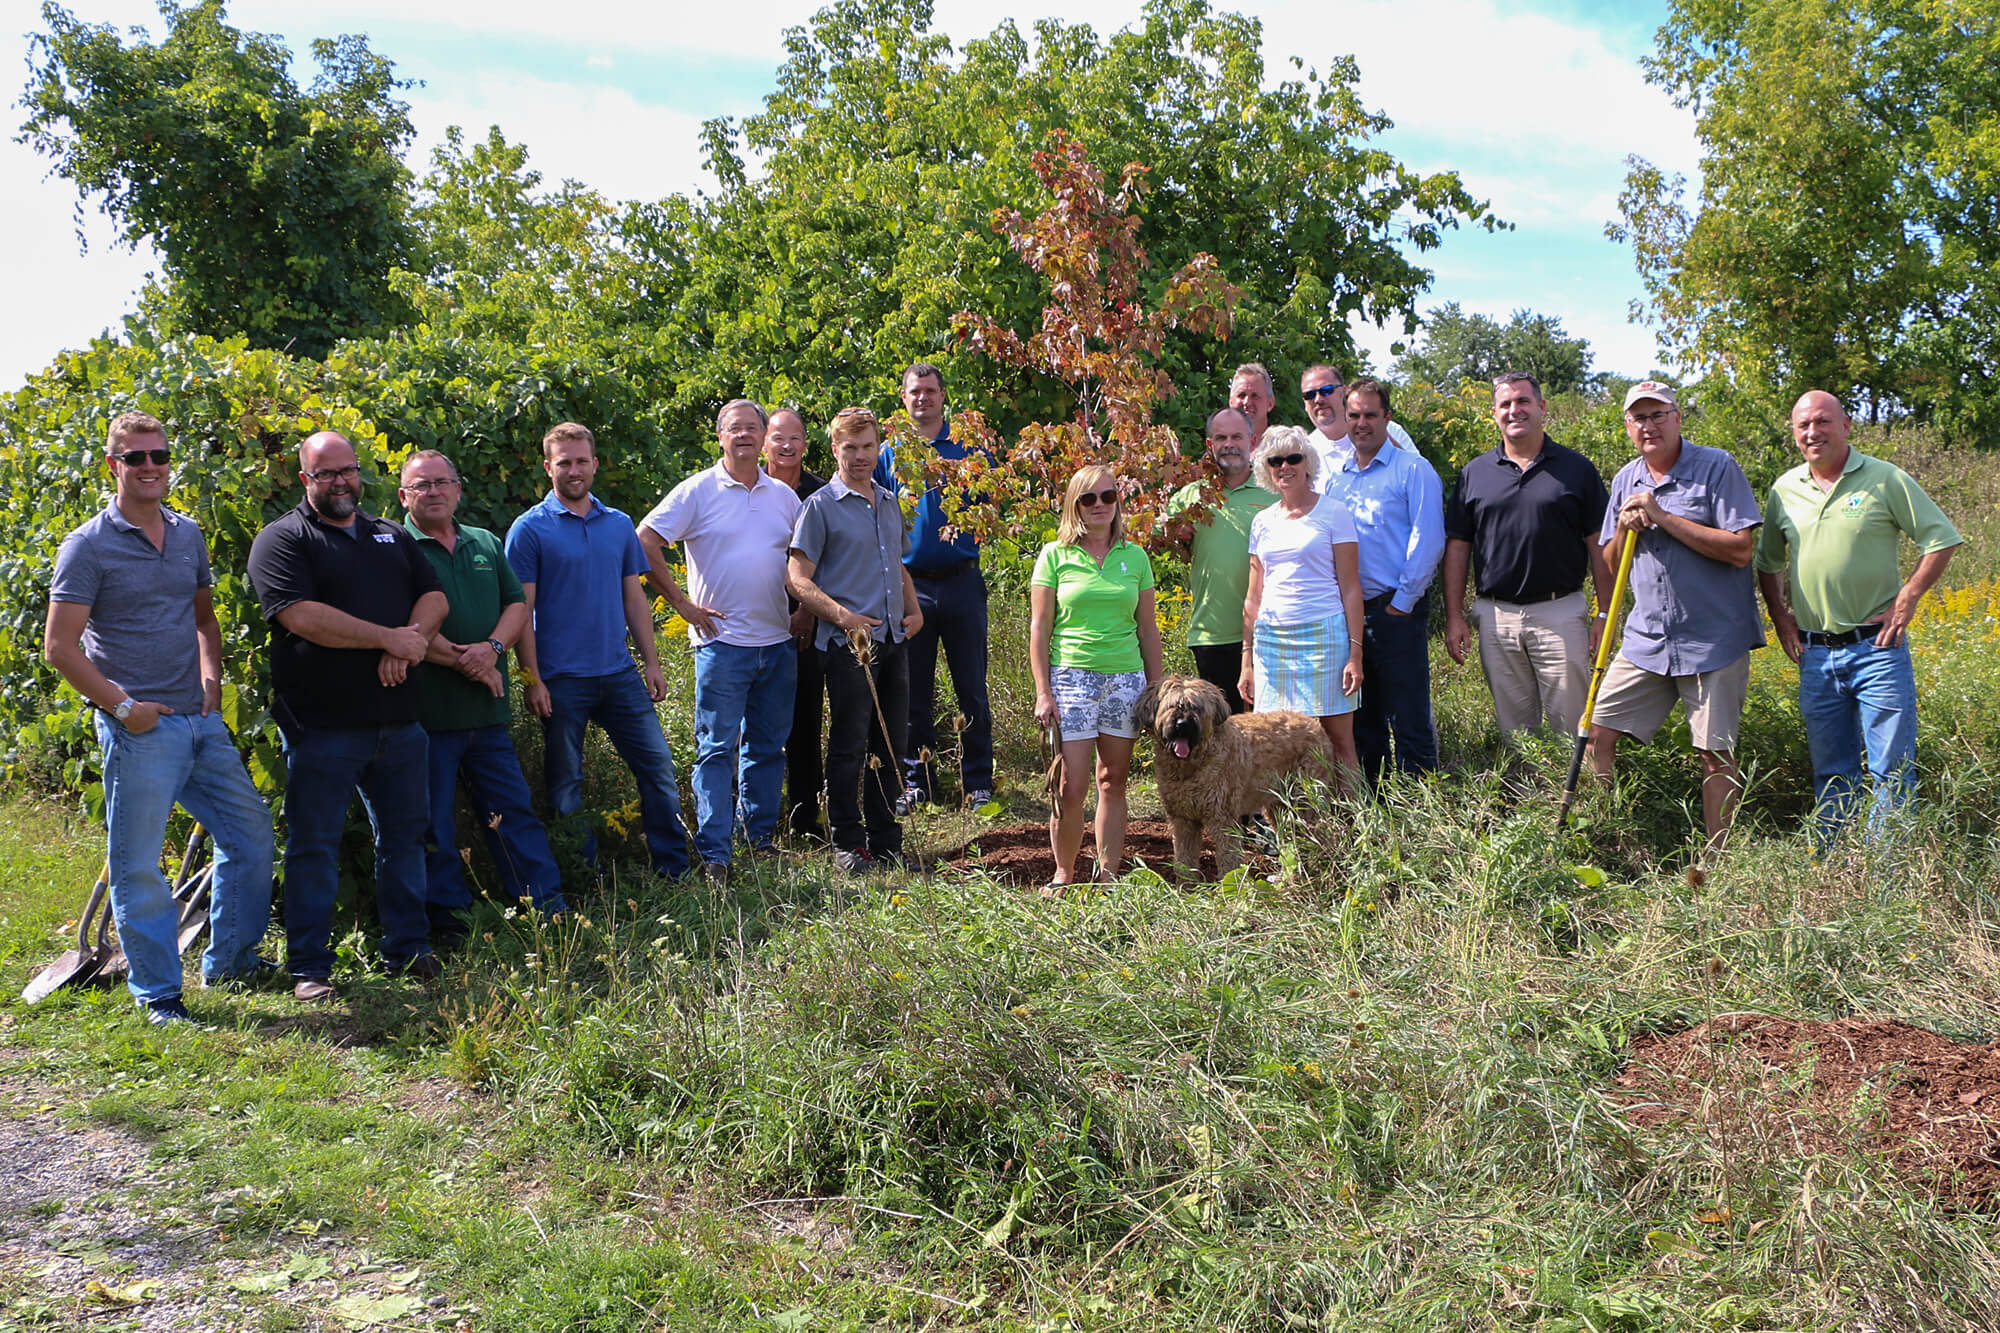 LO boar members surround a newly planted tree